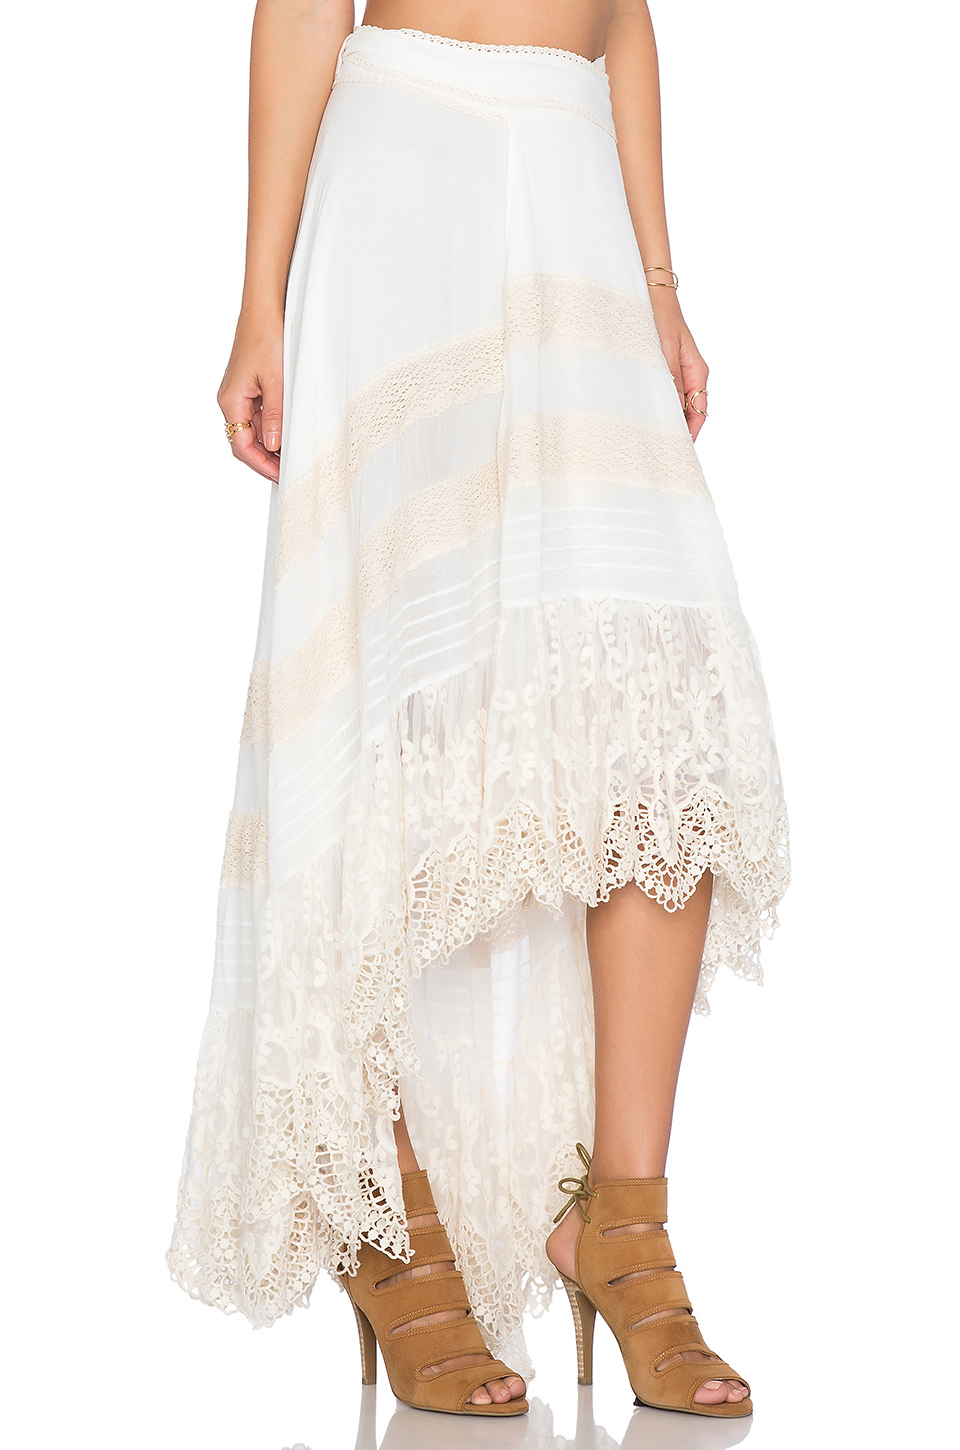 Super Lyst - Spell & The Gypsy Collective Peasant Girl Wrap Skirt in White XV76